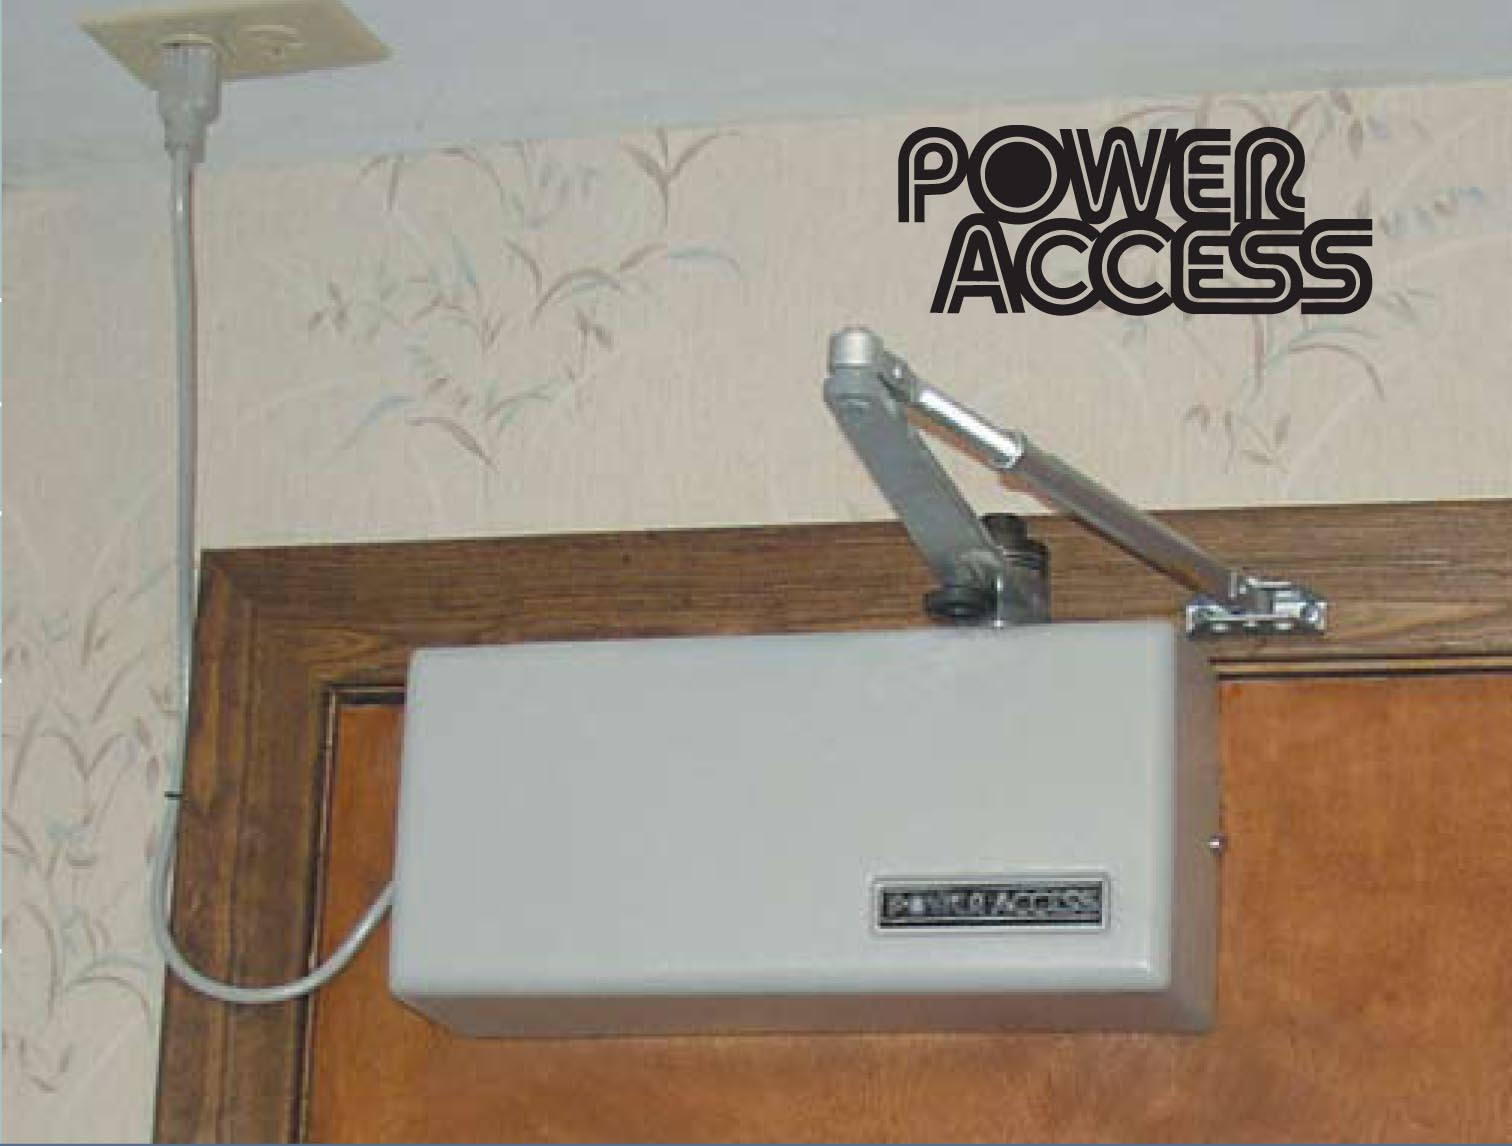 Power access automatic door openers at barrier free